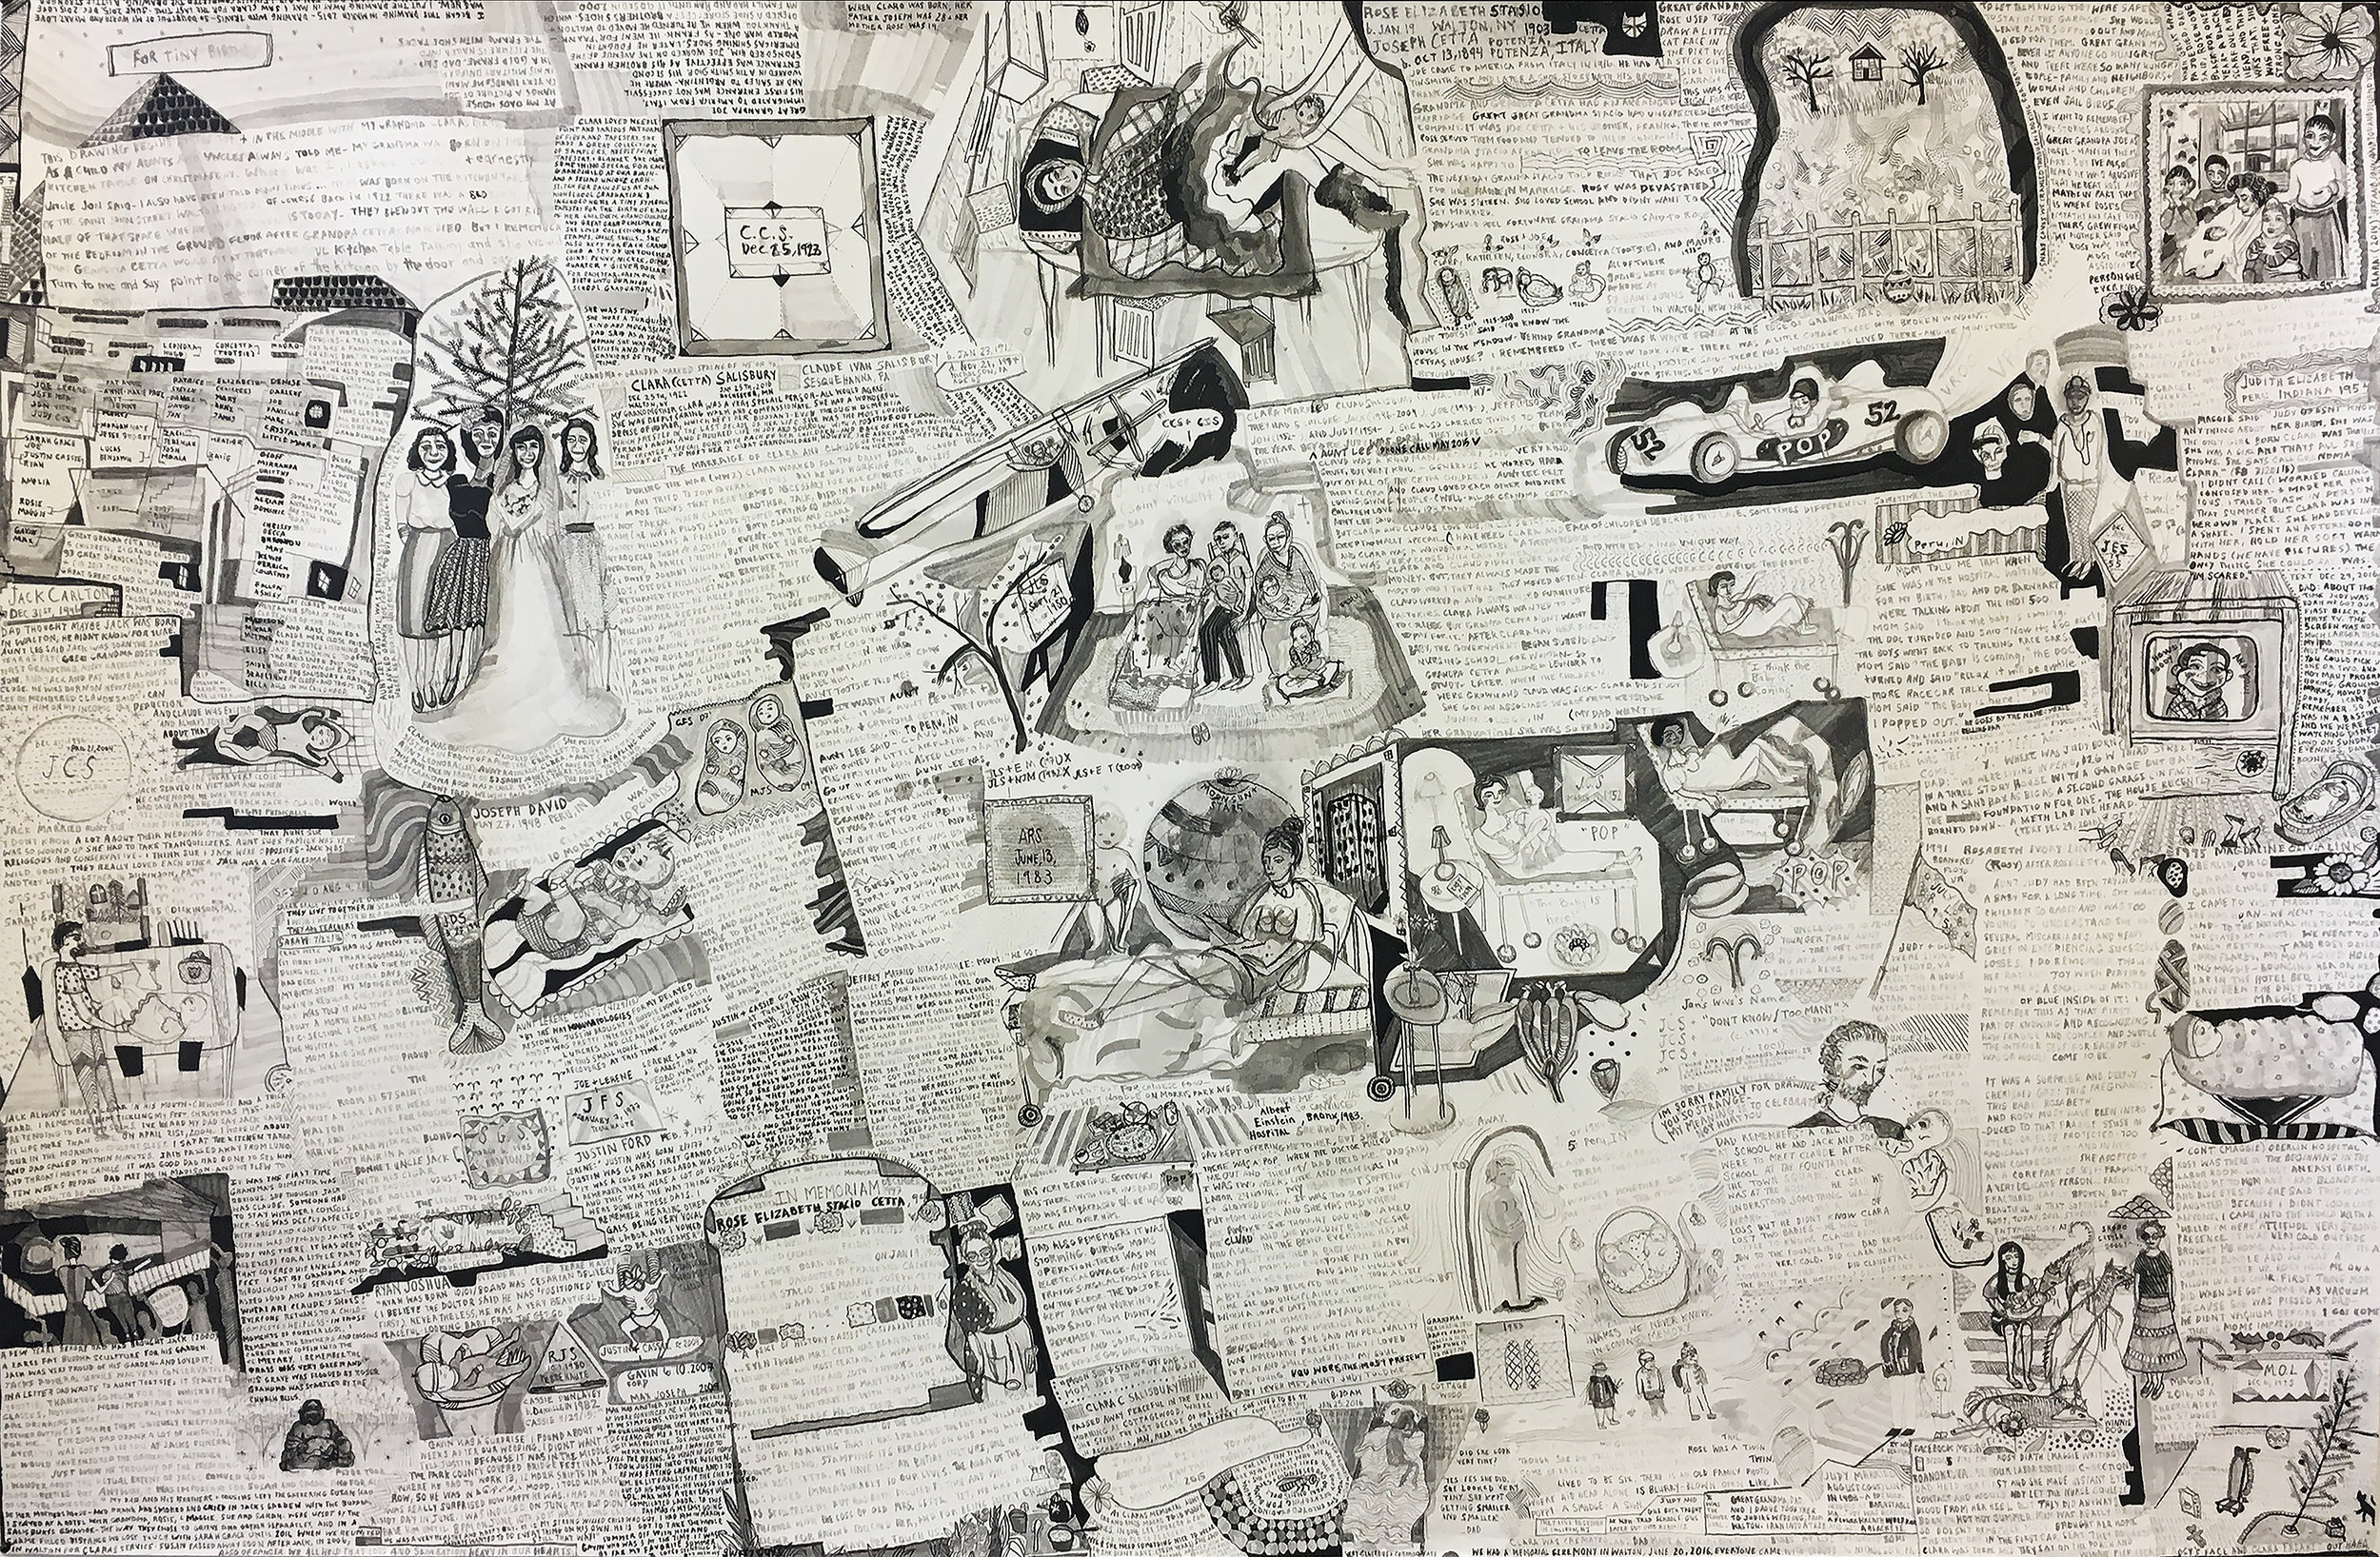 Tiny Births, A Family Tree, Ink and Brush on Paper, 26X40 inches, 2017